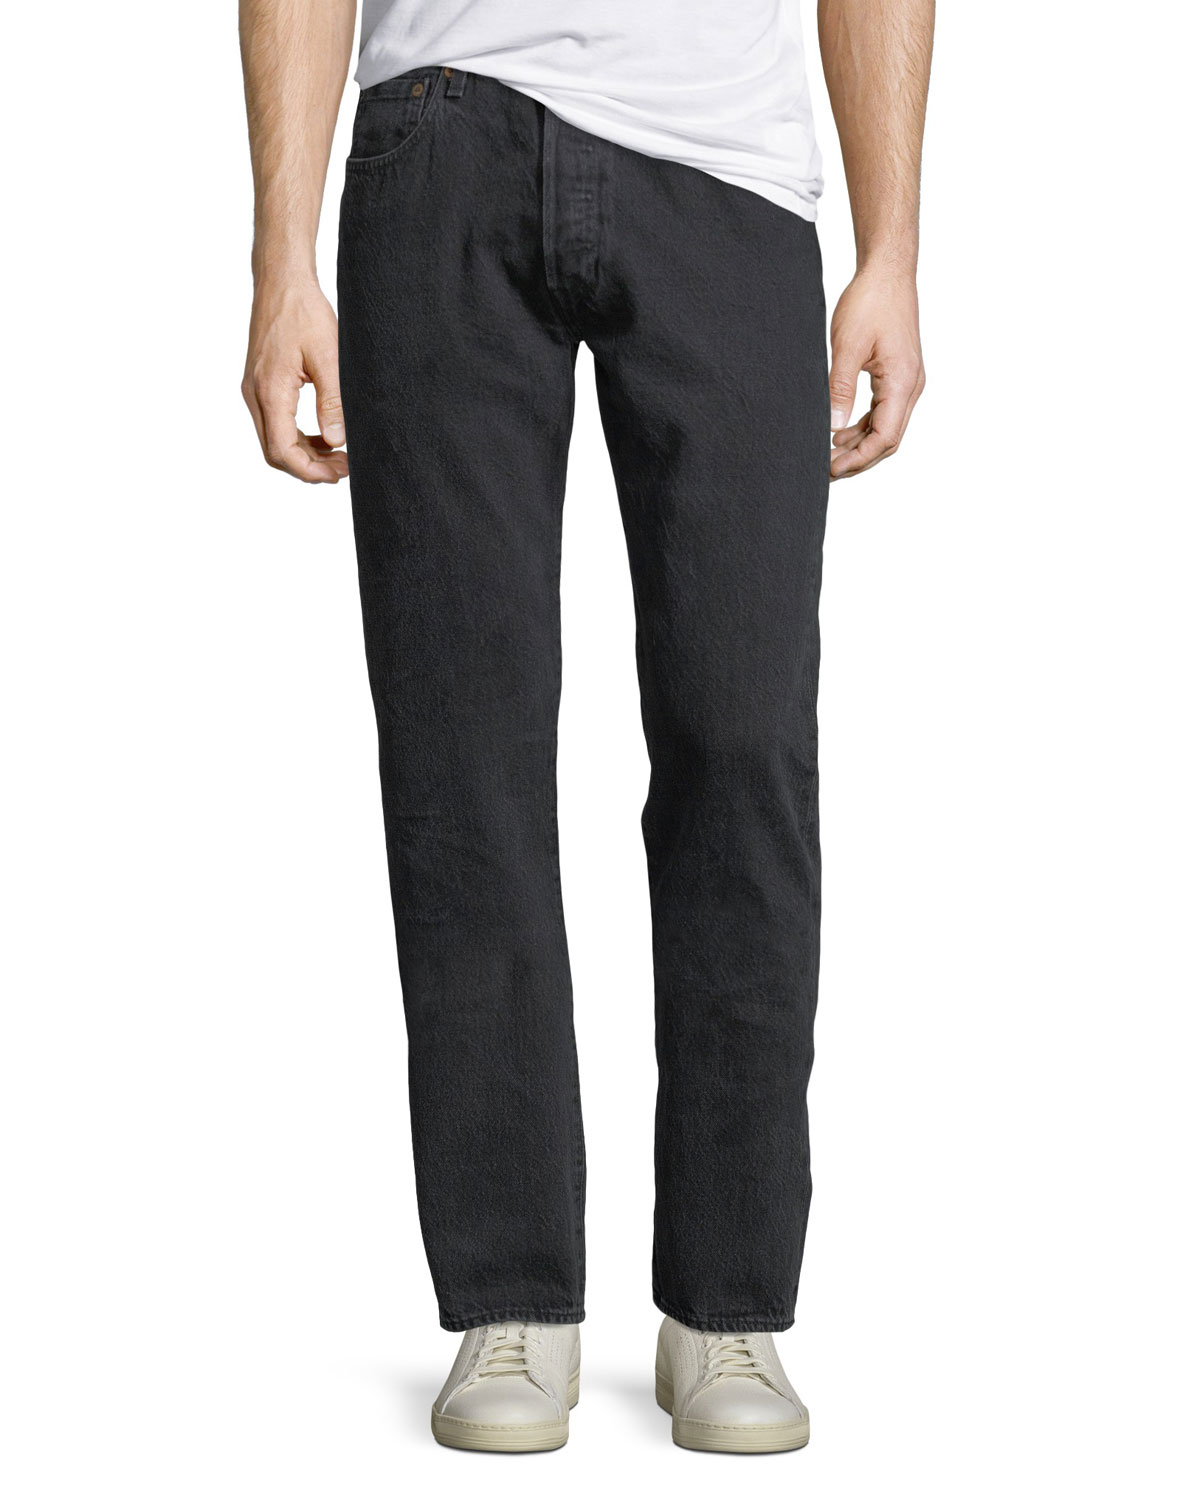 Levi Jeans 501 Men S Made Crafted 501 Original Fit Jeans